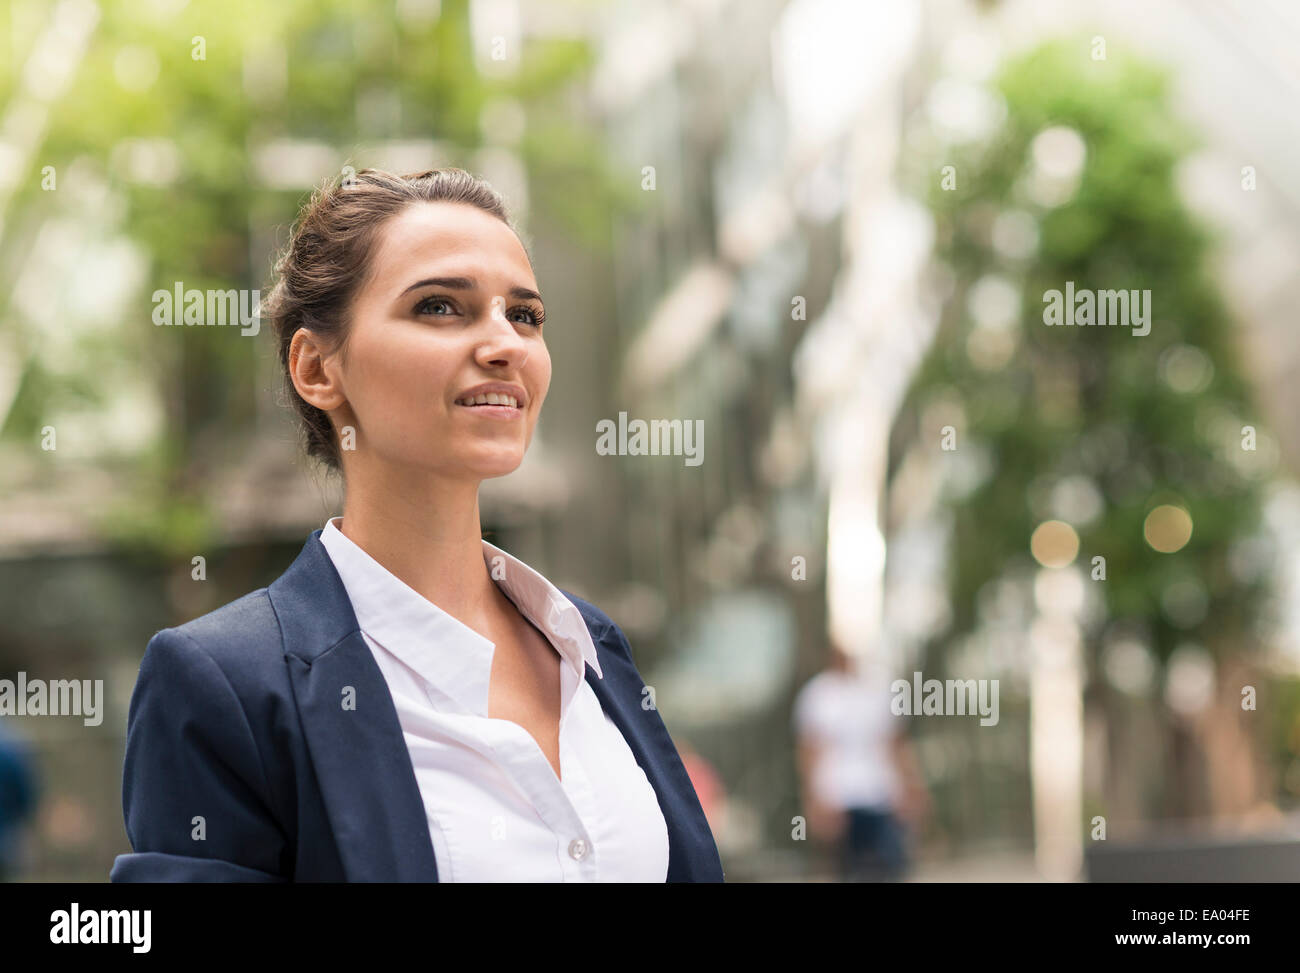 Young confident businesswoman at Broadgate Tower, London, UK - Stock Image